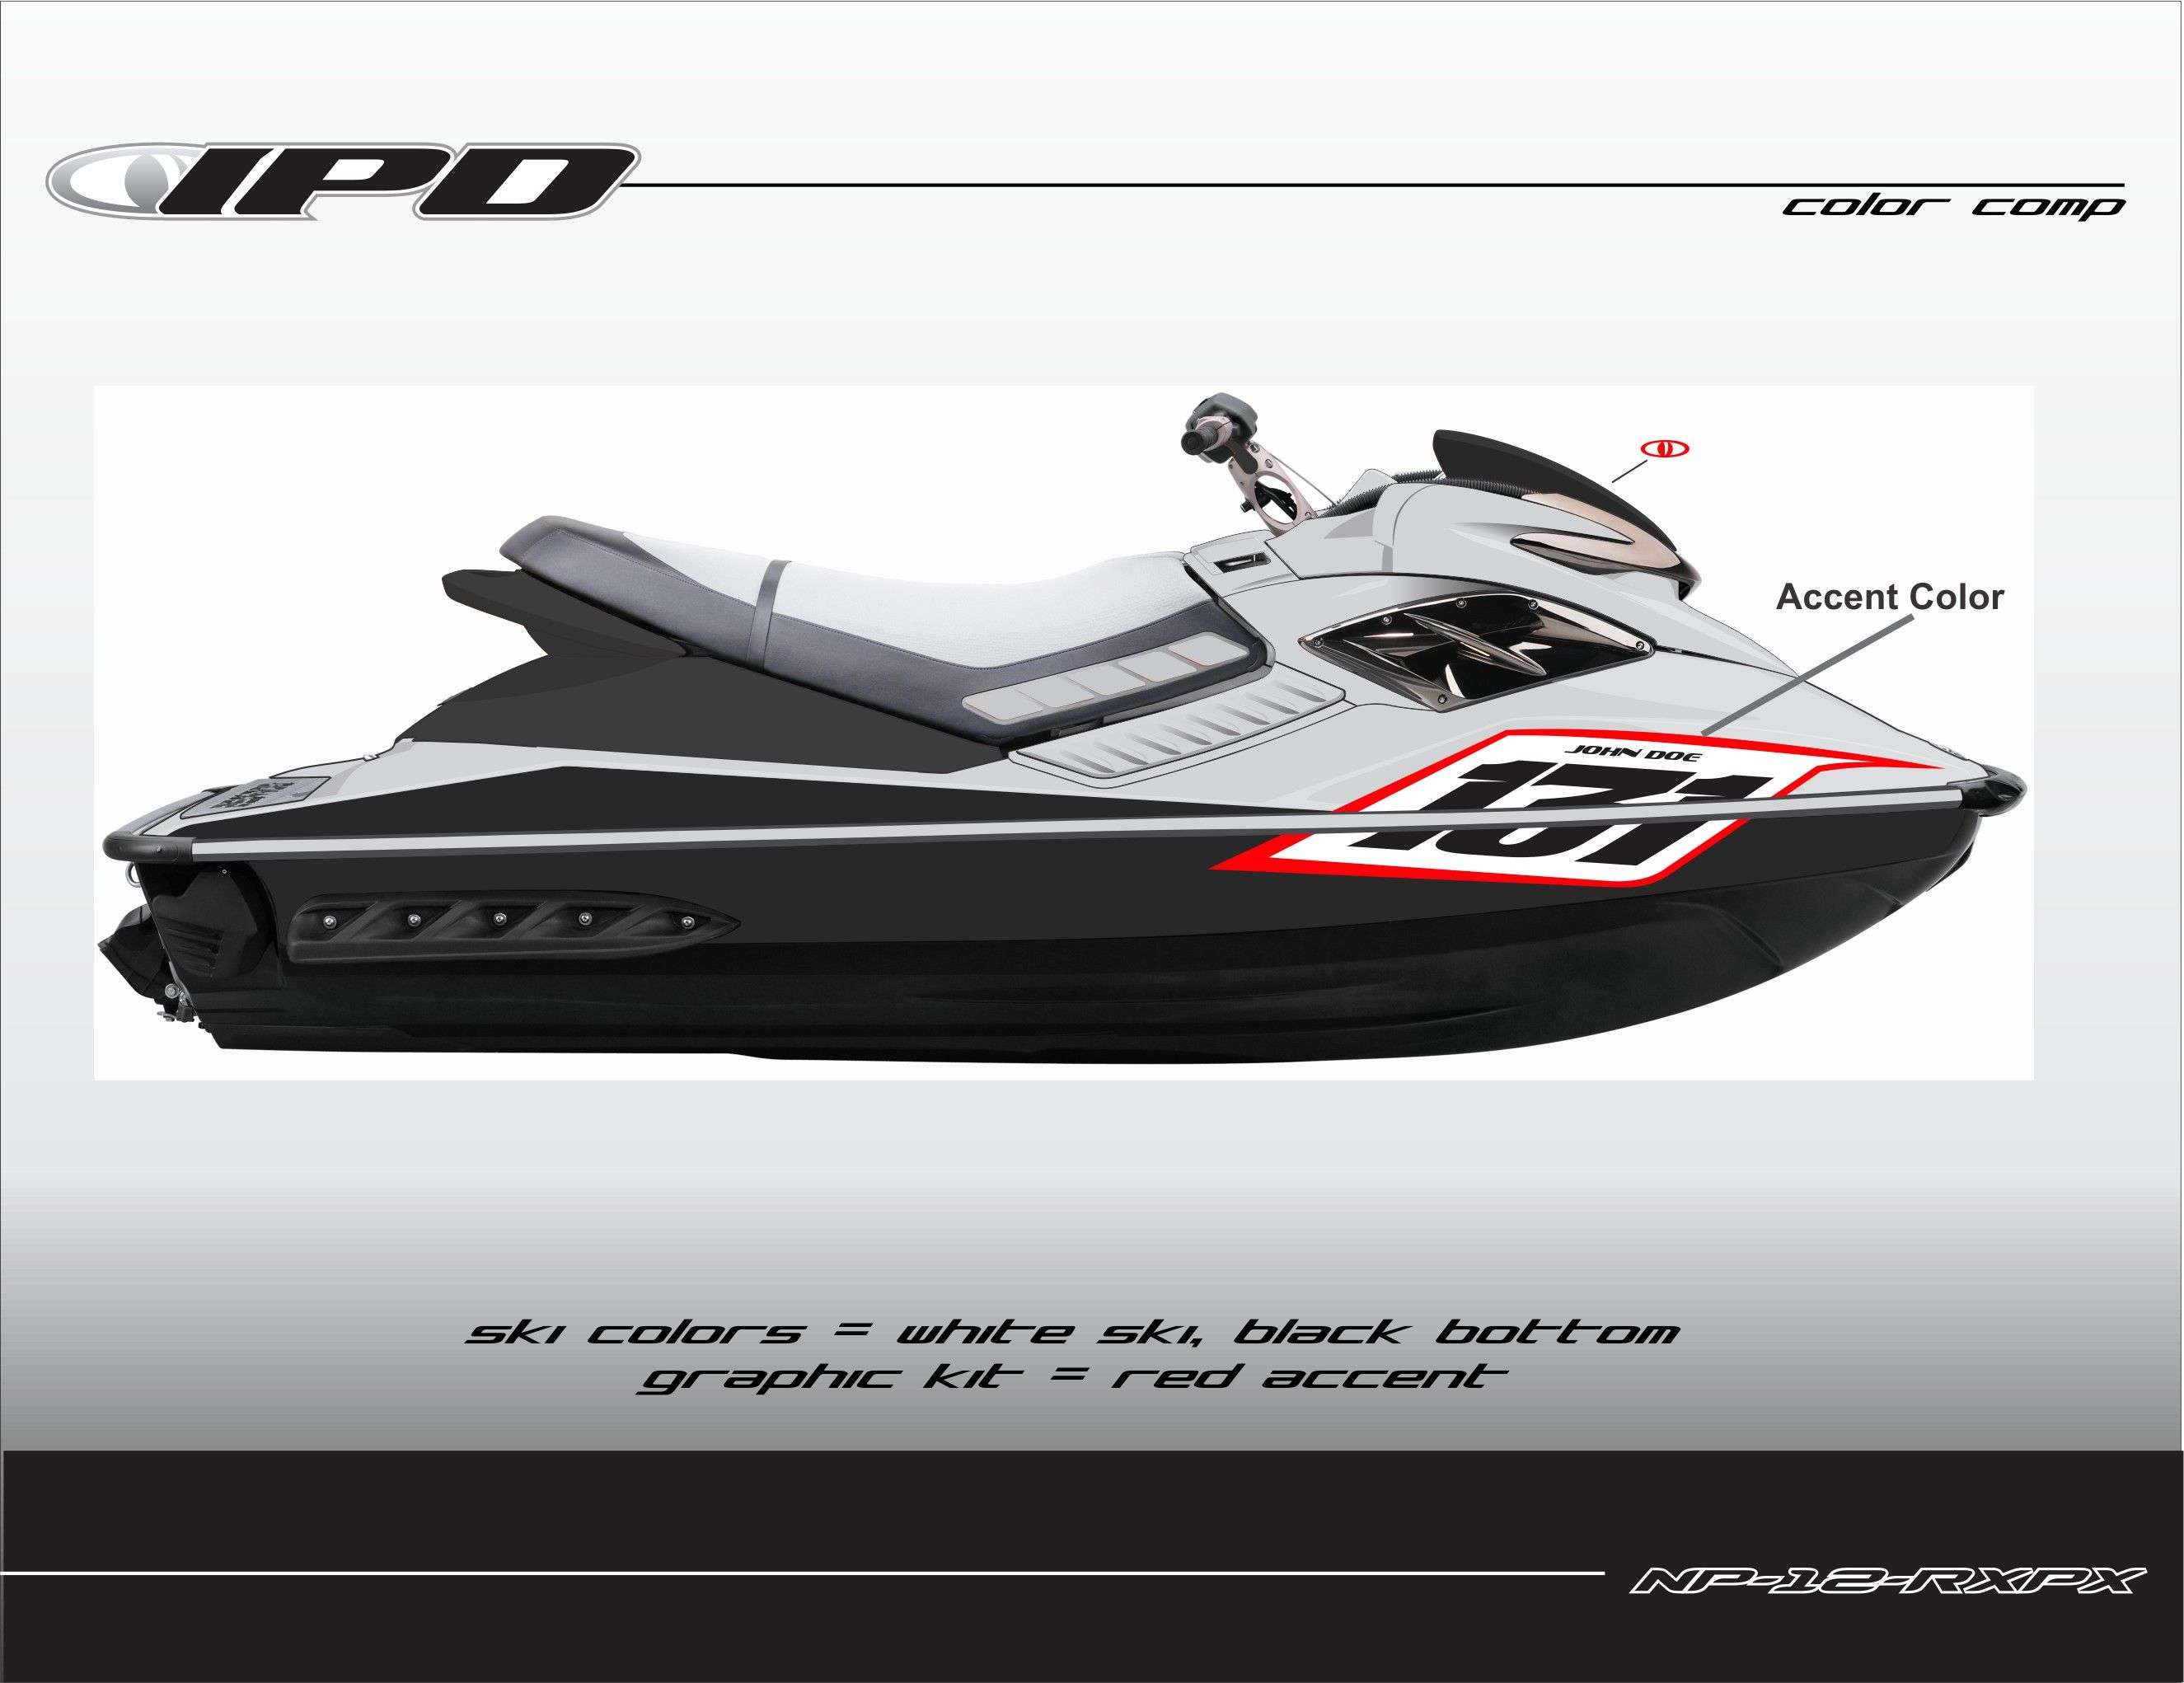 Sea Doo Gen 1 Rx Rxp Rxp X Number Plate Kit Competition Design Ipd Jet Ski Graphics Number Plate Graphic Kit Seadoo